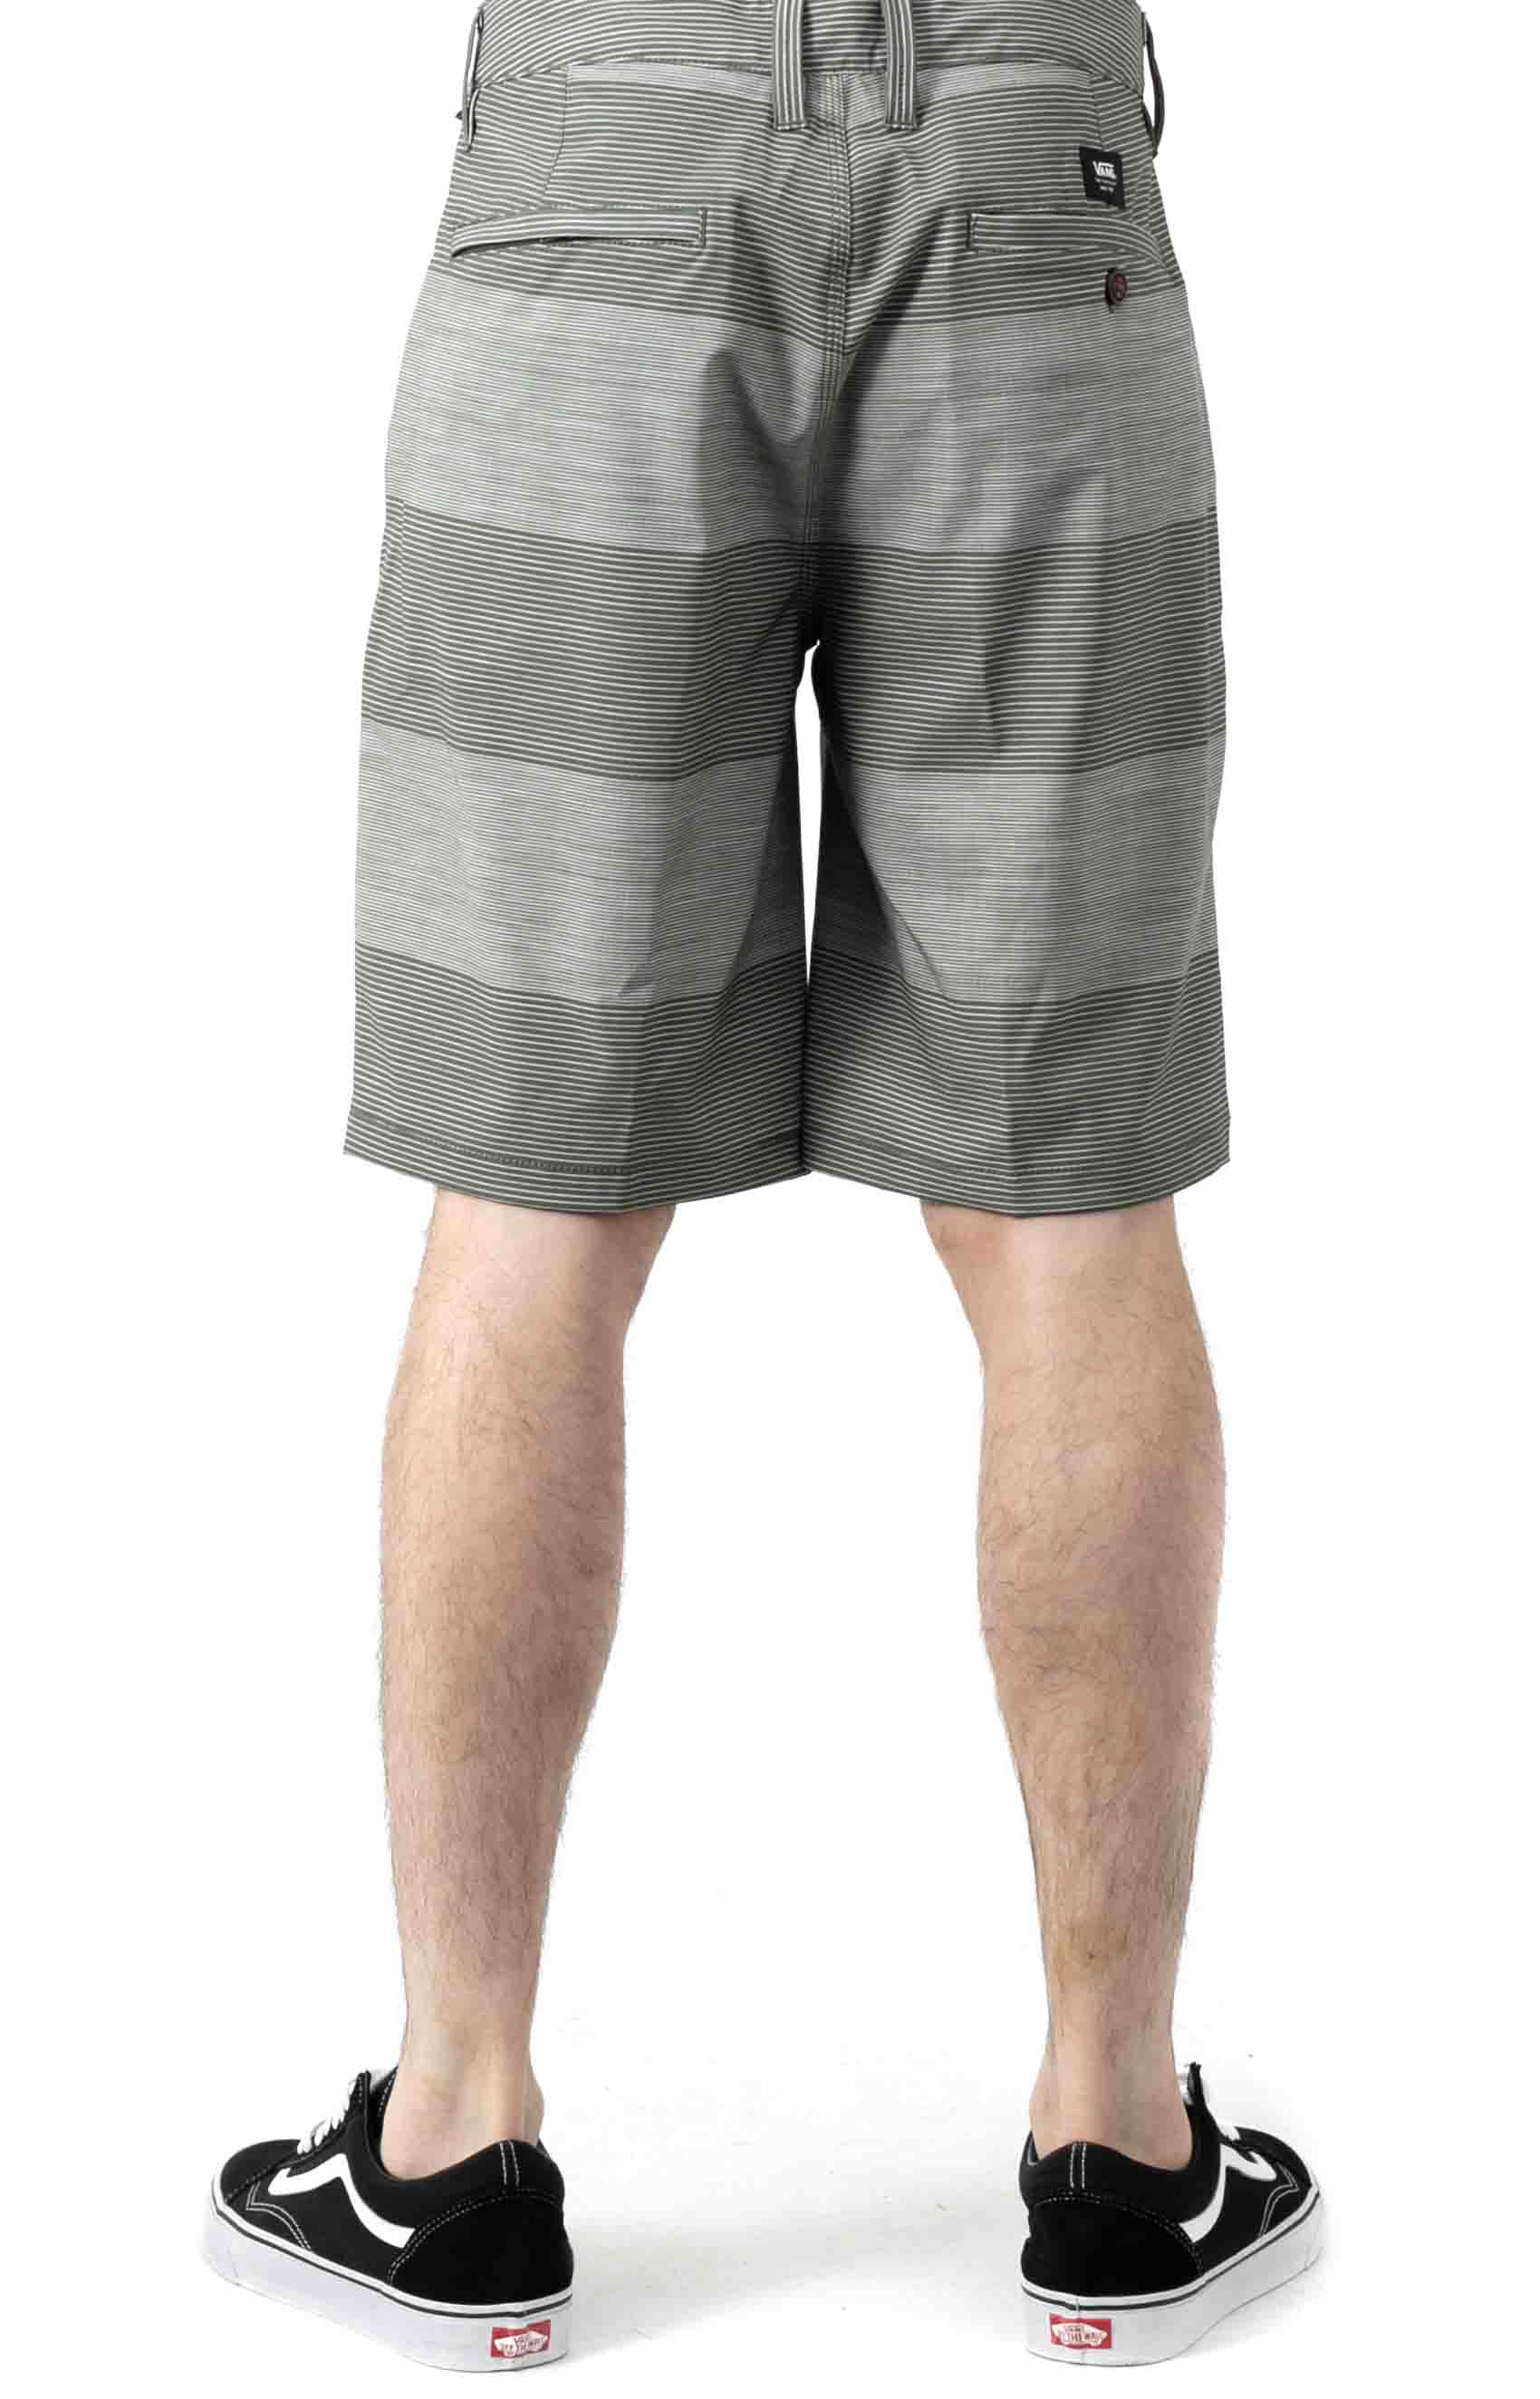 Authentic Stripe Short - Grape Leaf  3